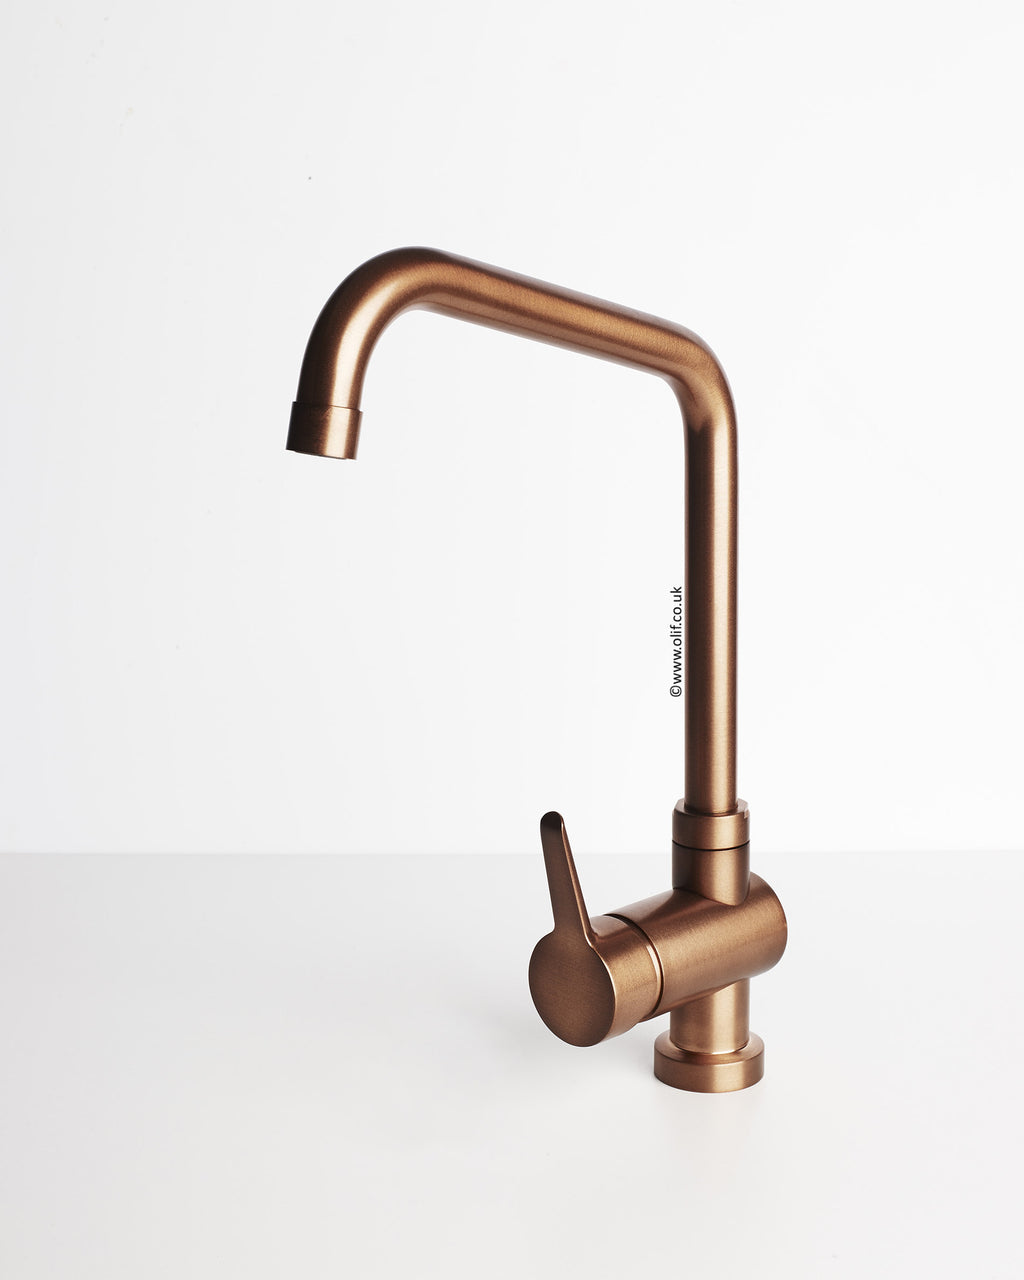 Primo Rustic Copper, kitchen mixer tap